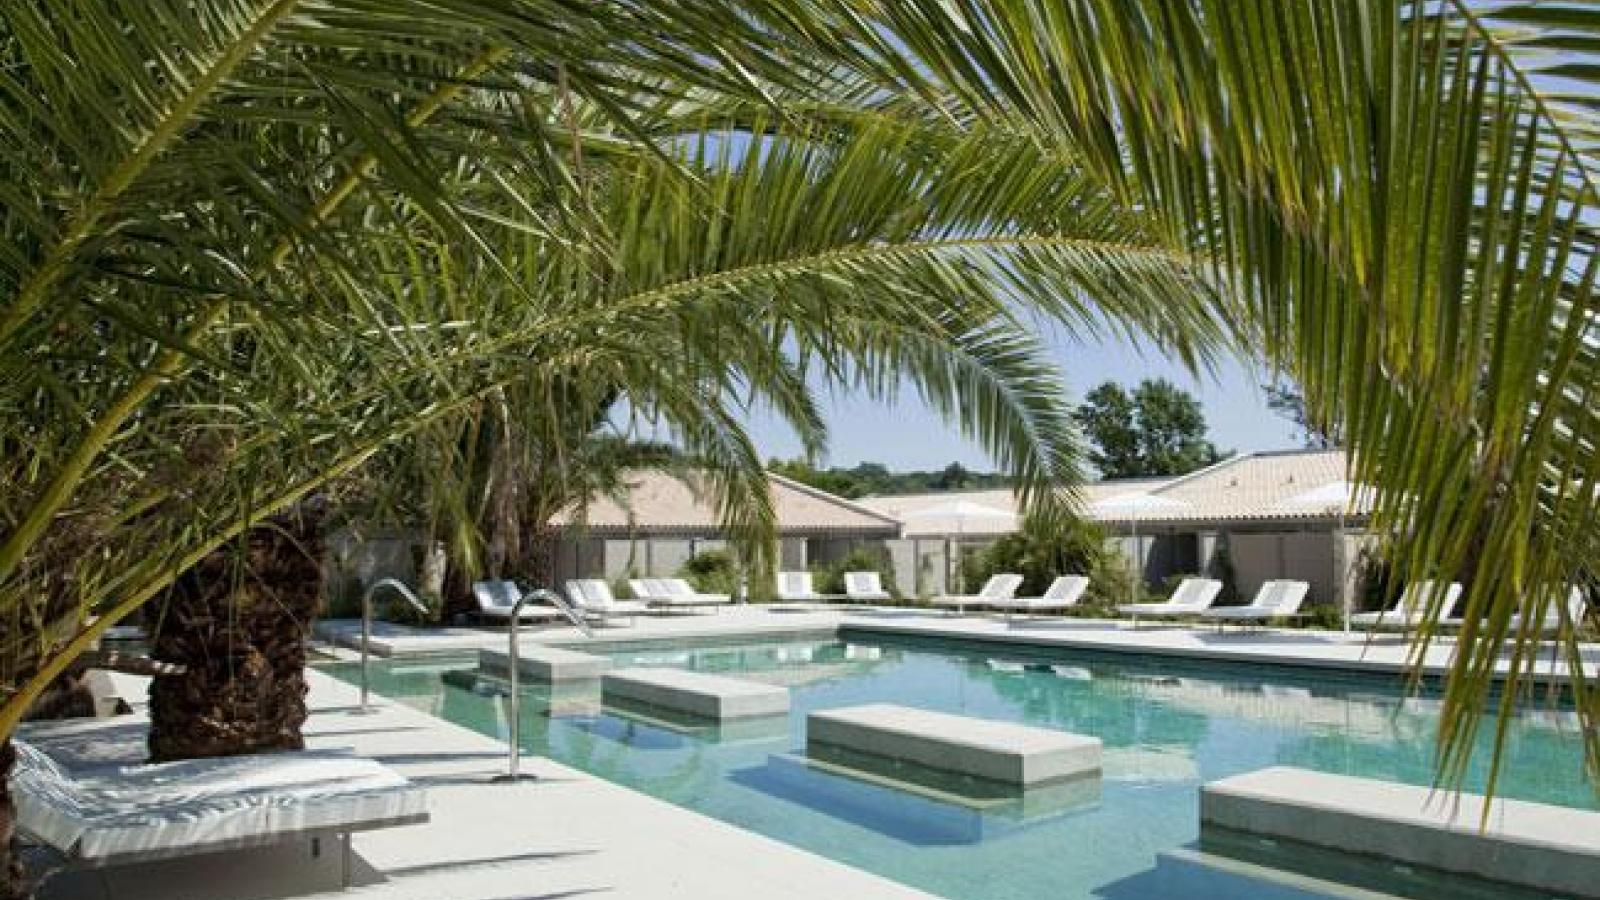 Indian Summer Special offer of the Hotel Sezz Saint-Tropez